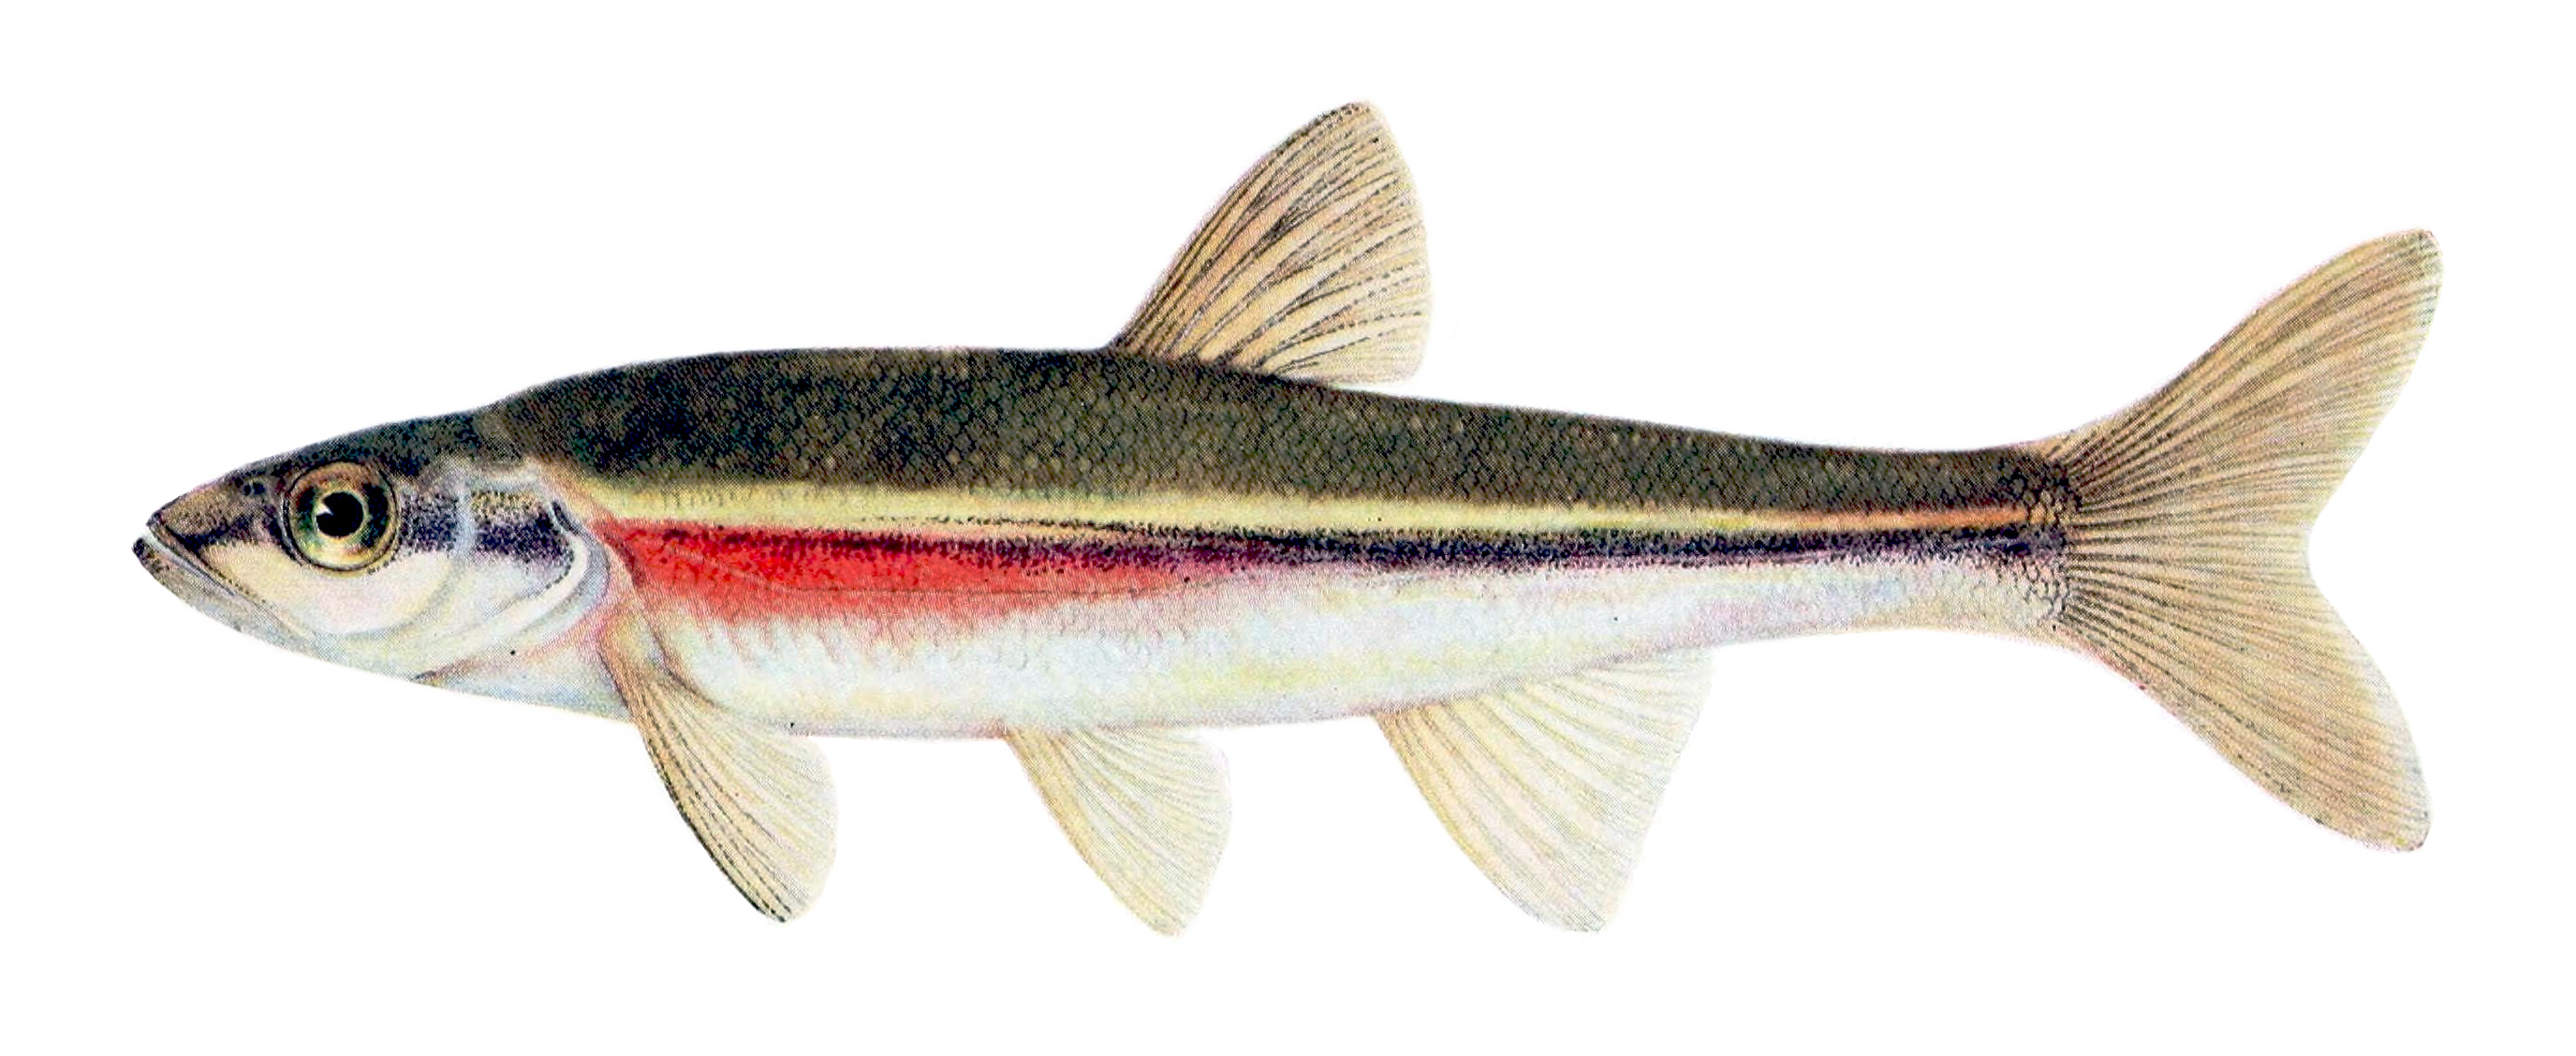 a green and orange fish